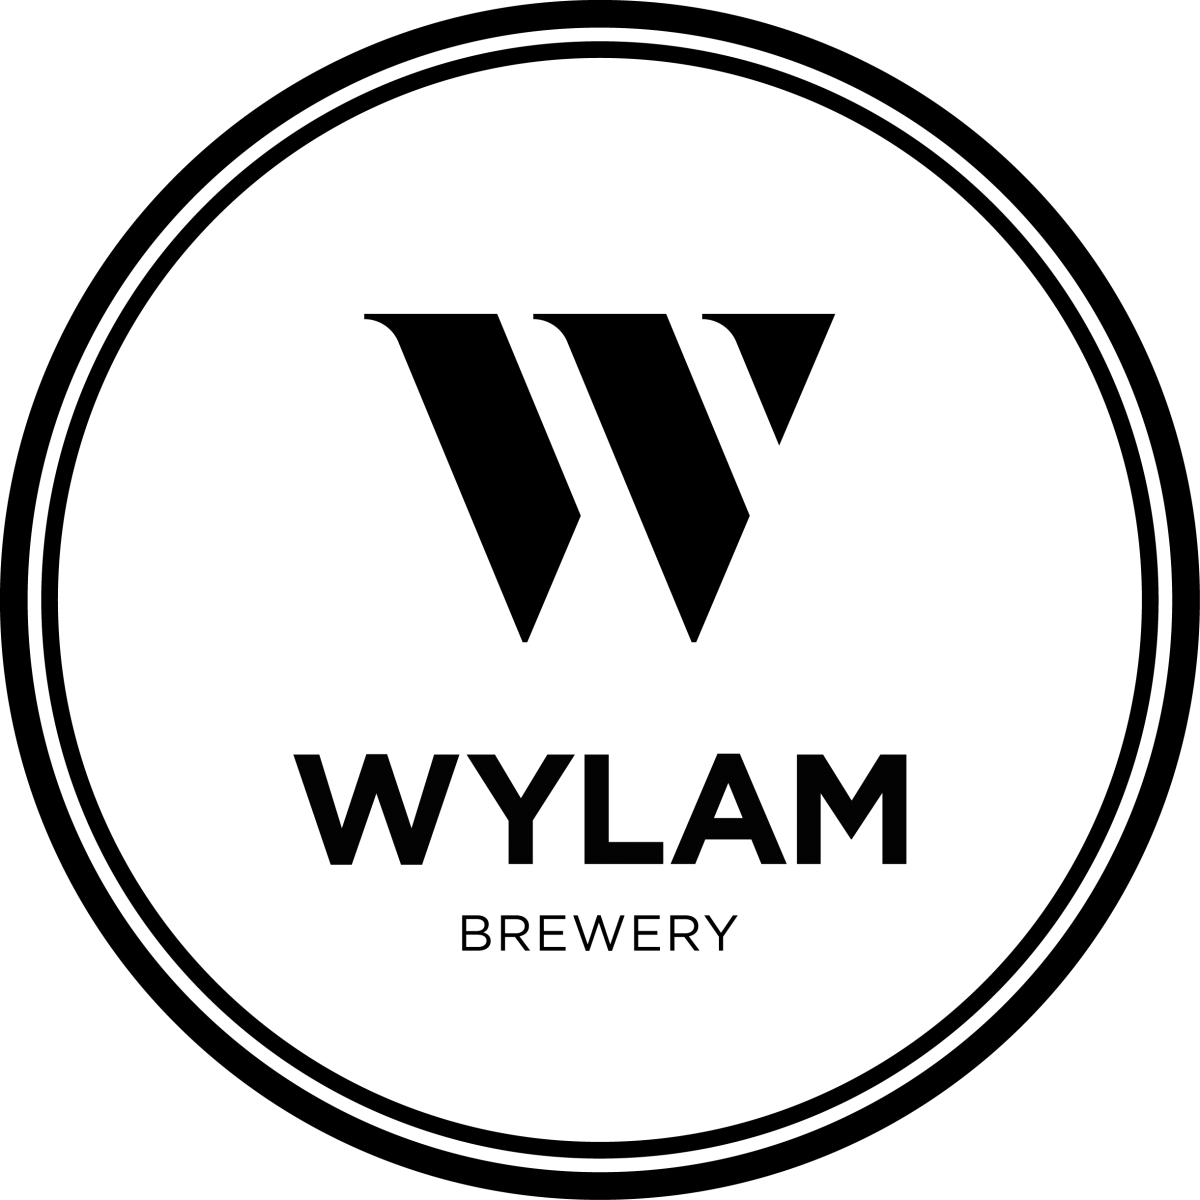 WylamBrewery_Badge_Black.png